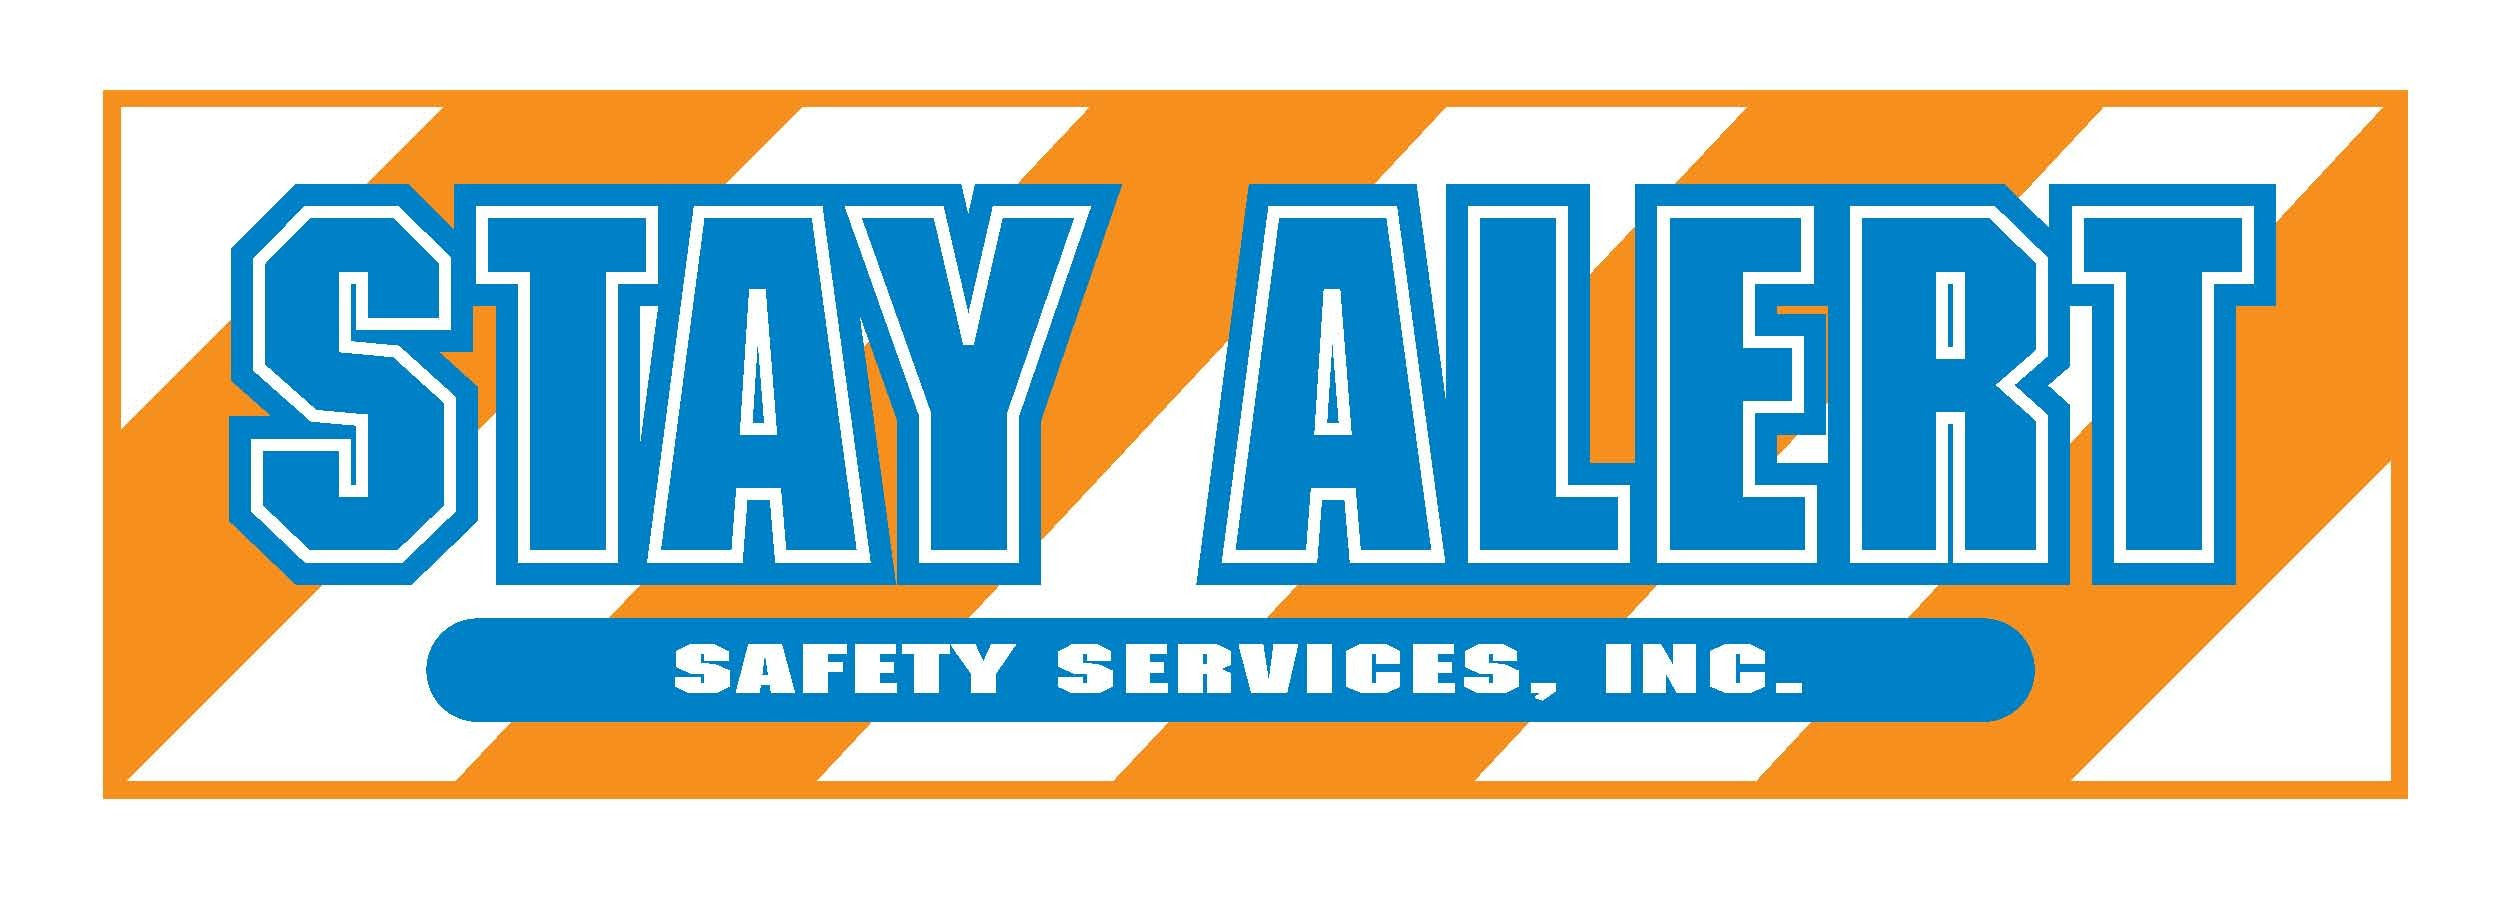 Stay Alert Safety Services Inc.